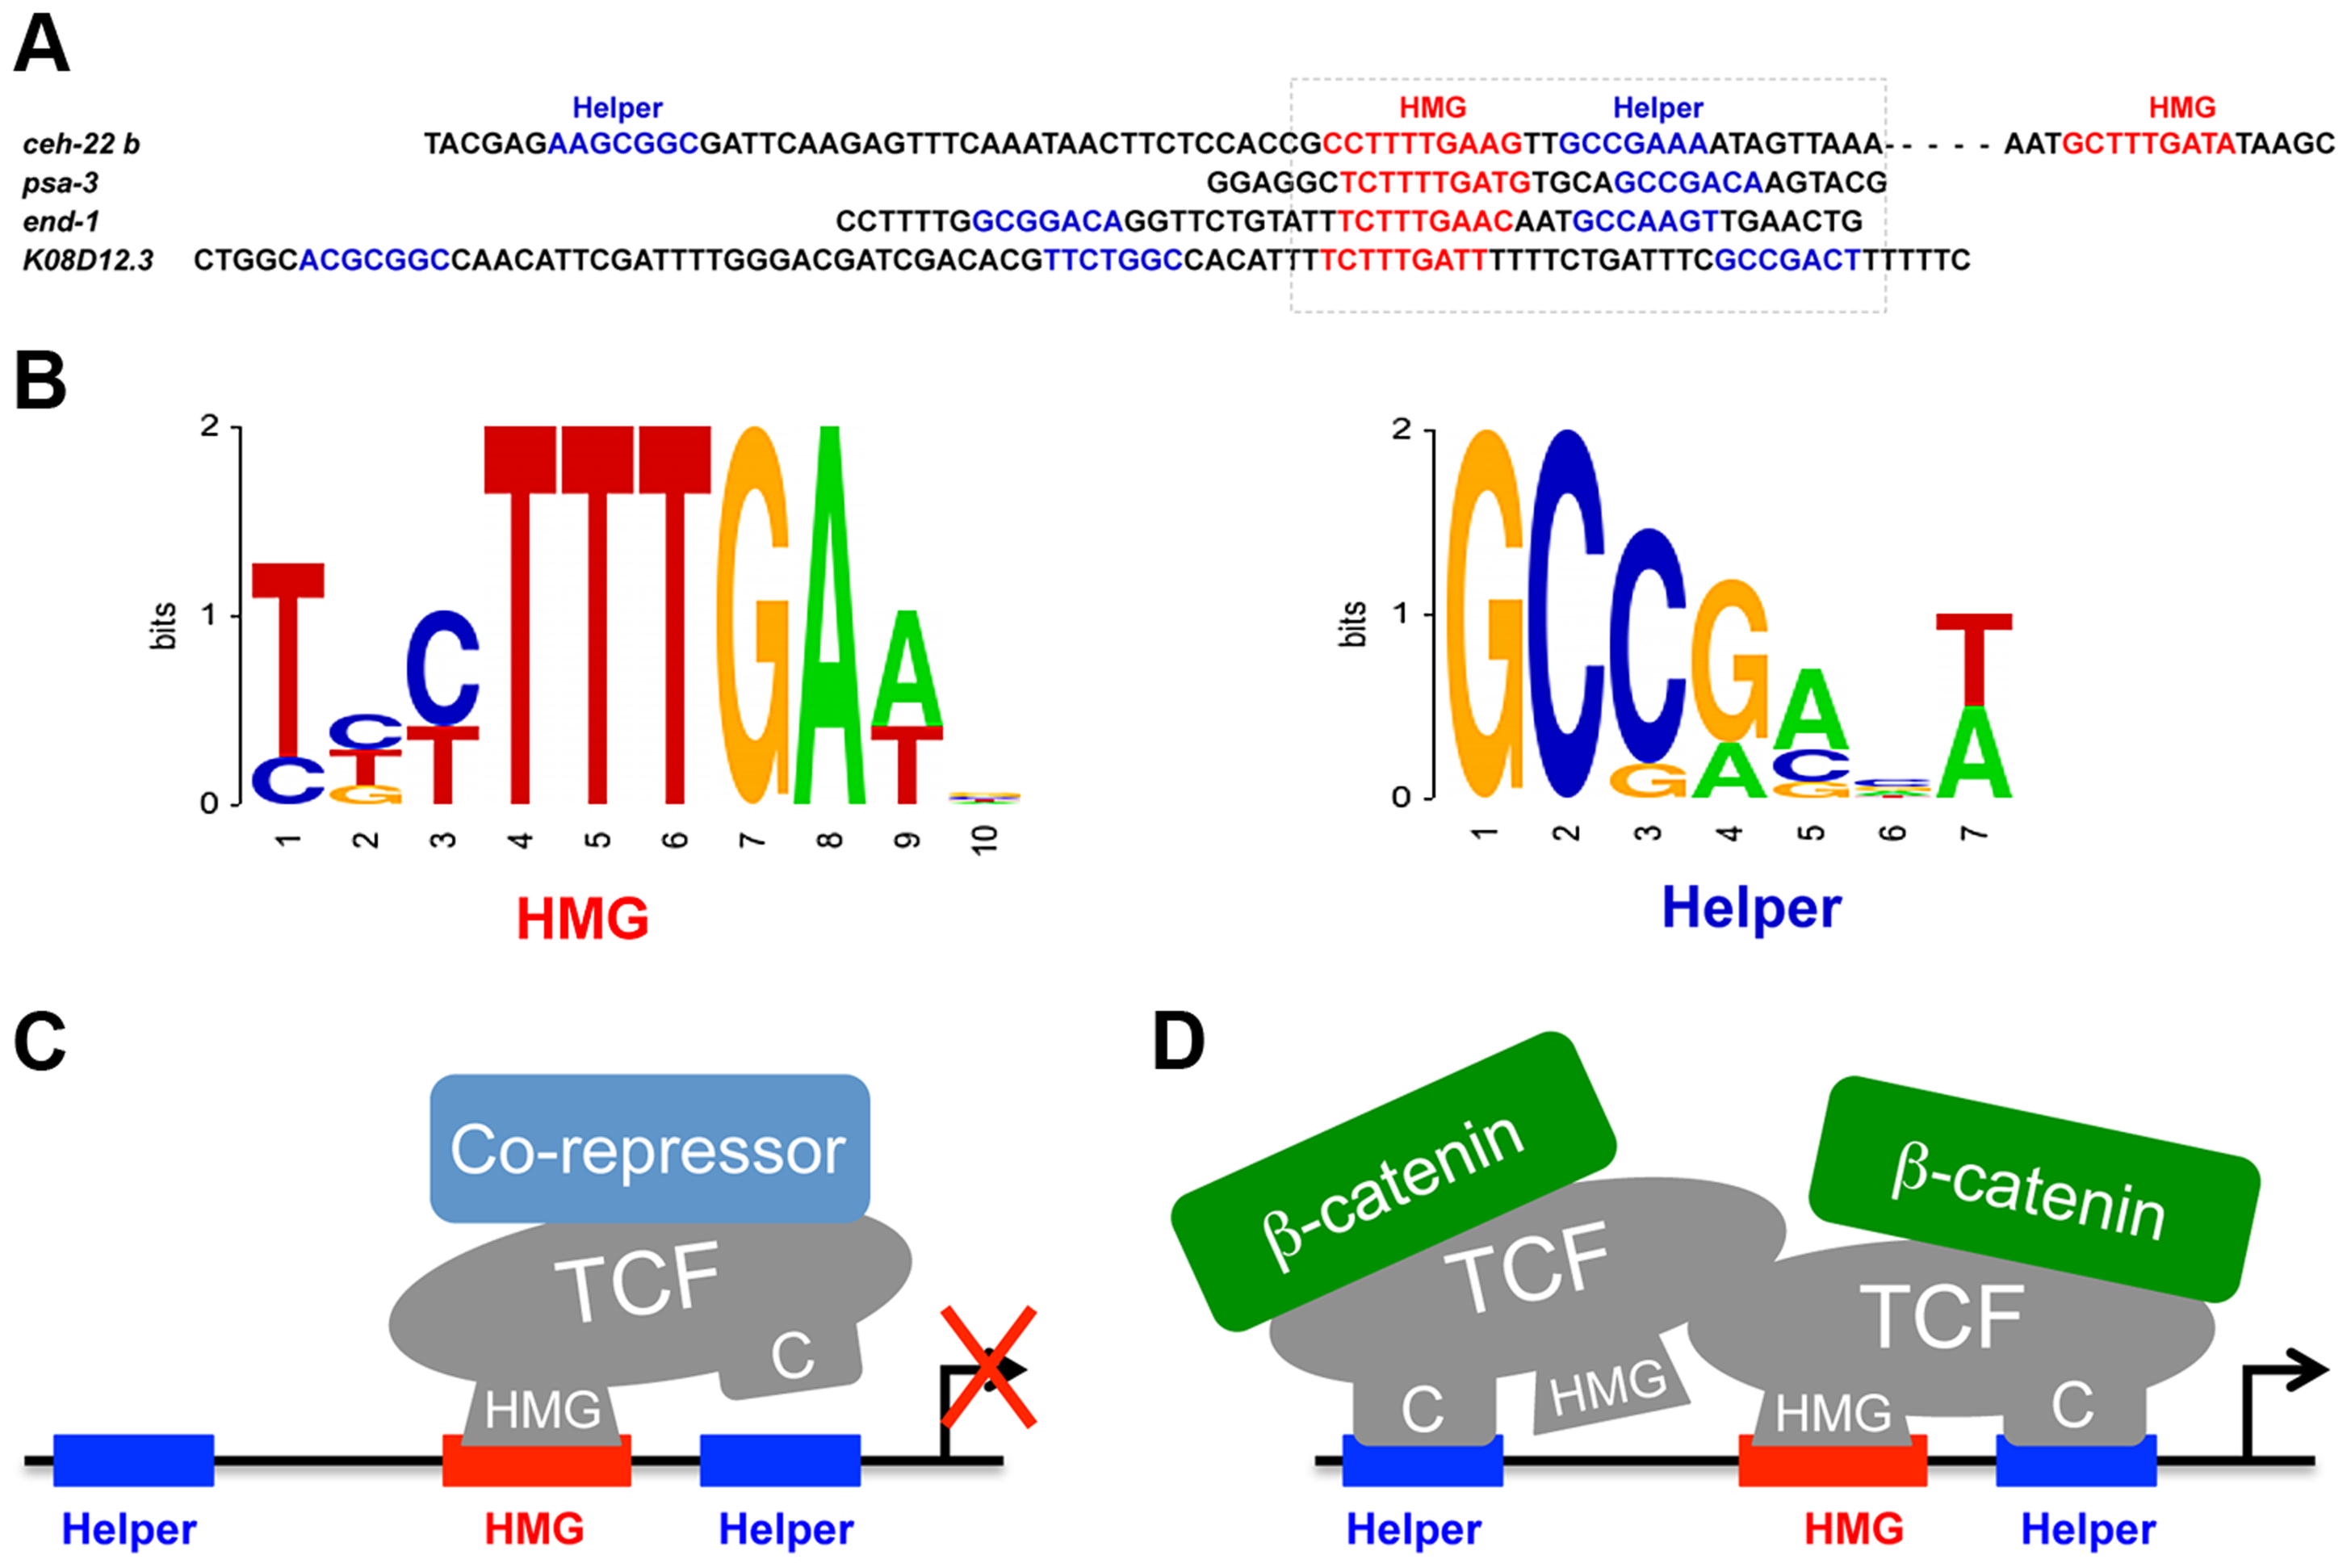 POP-1 consensus HMG and Helper sites and models for the TCF transcriptional switch.